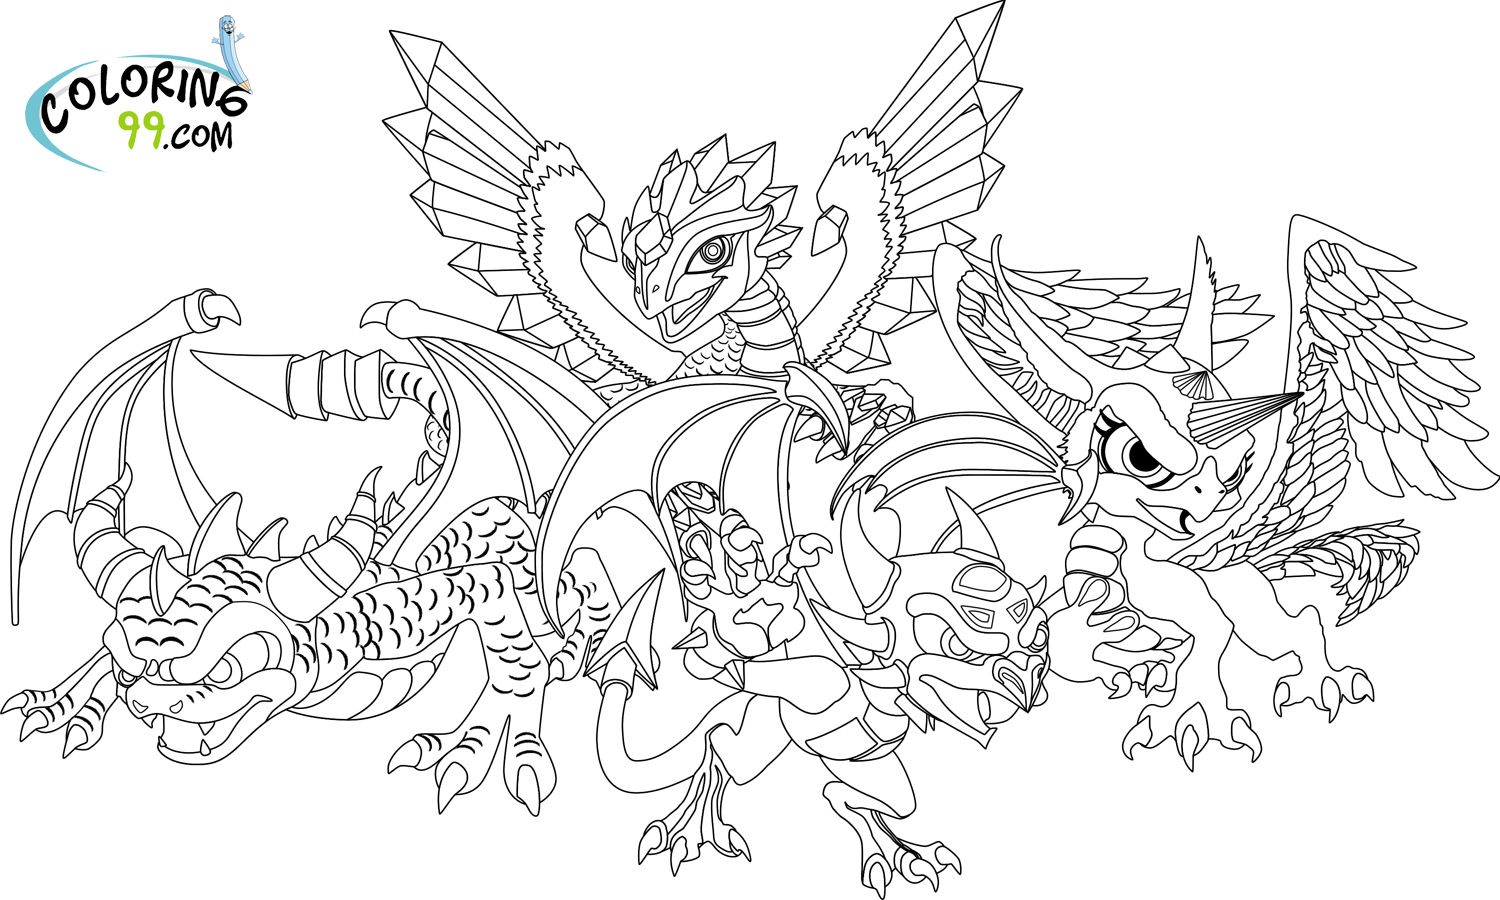 skylanders giants coloring pages | Skylanders Coloring Pages | Team colors